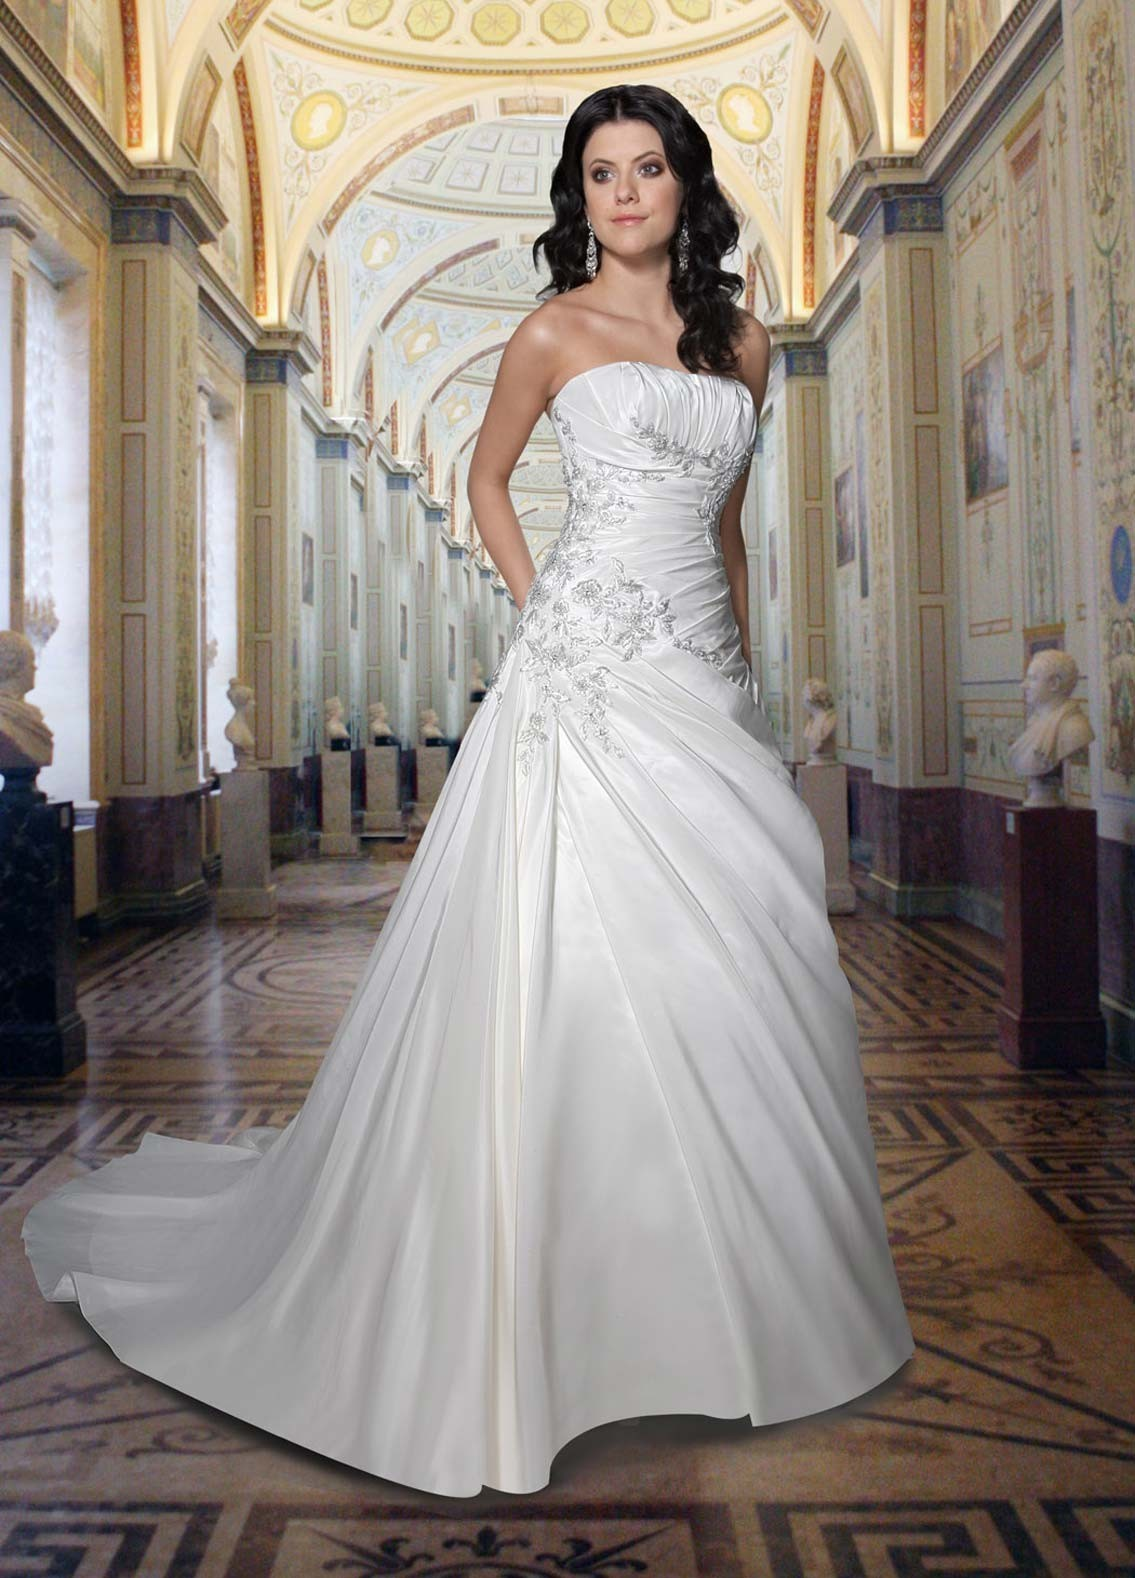 strapless wedding dresses dressed up girl ForDress Up Wedding Dresses